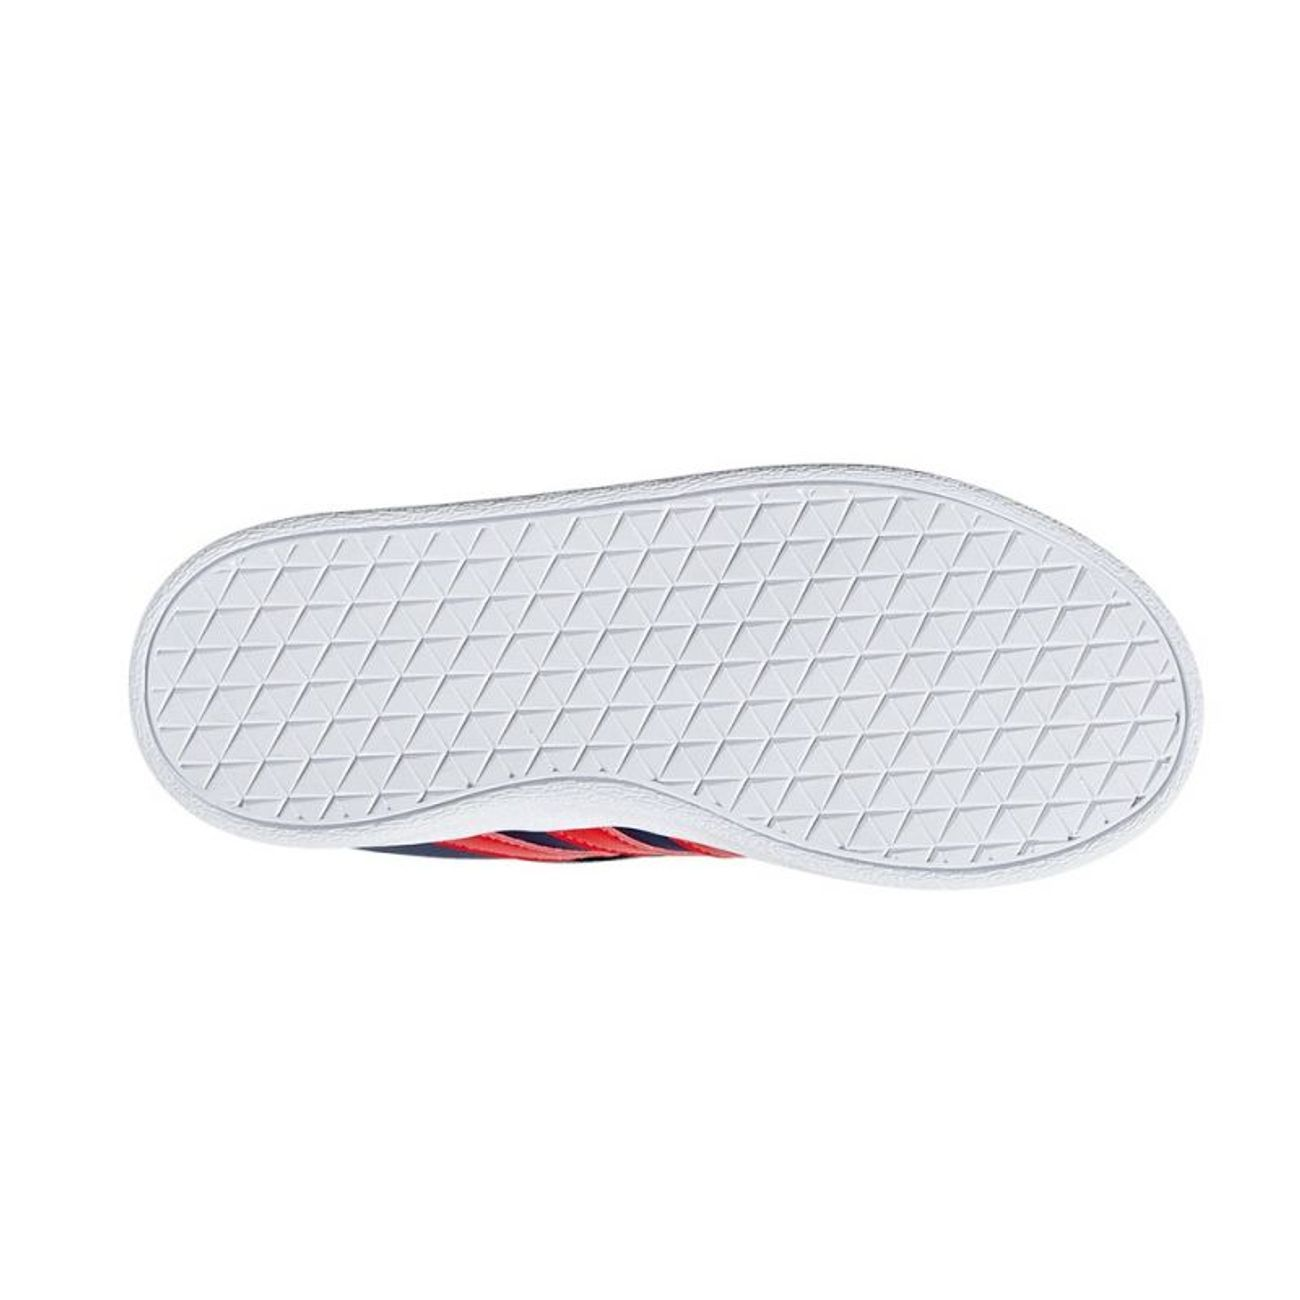 Court Padel Cmf Adulte Adidas Junior Vl 2 F36386 Rouge Bleu 0 GUzpVqSM